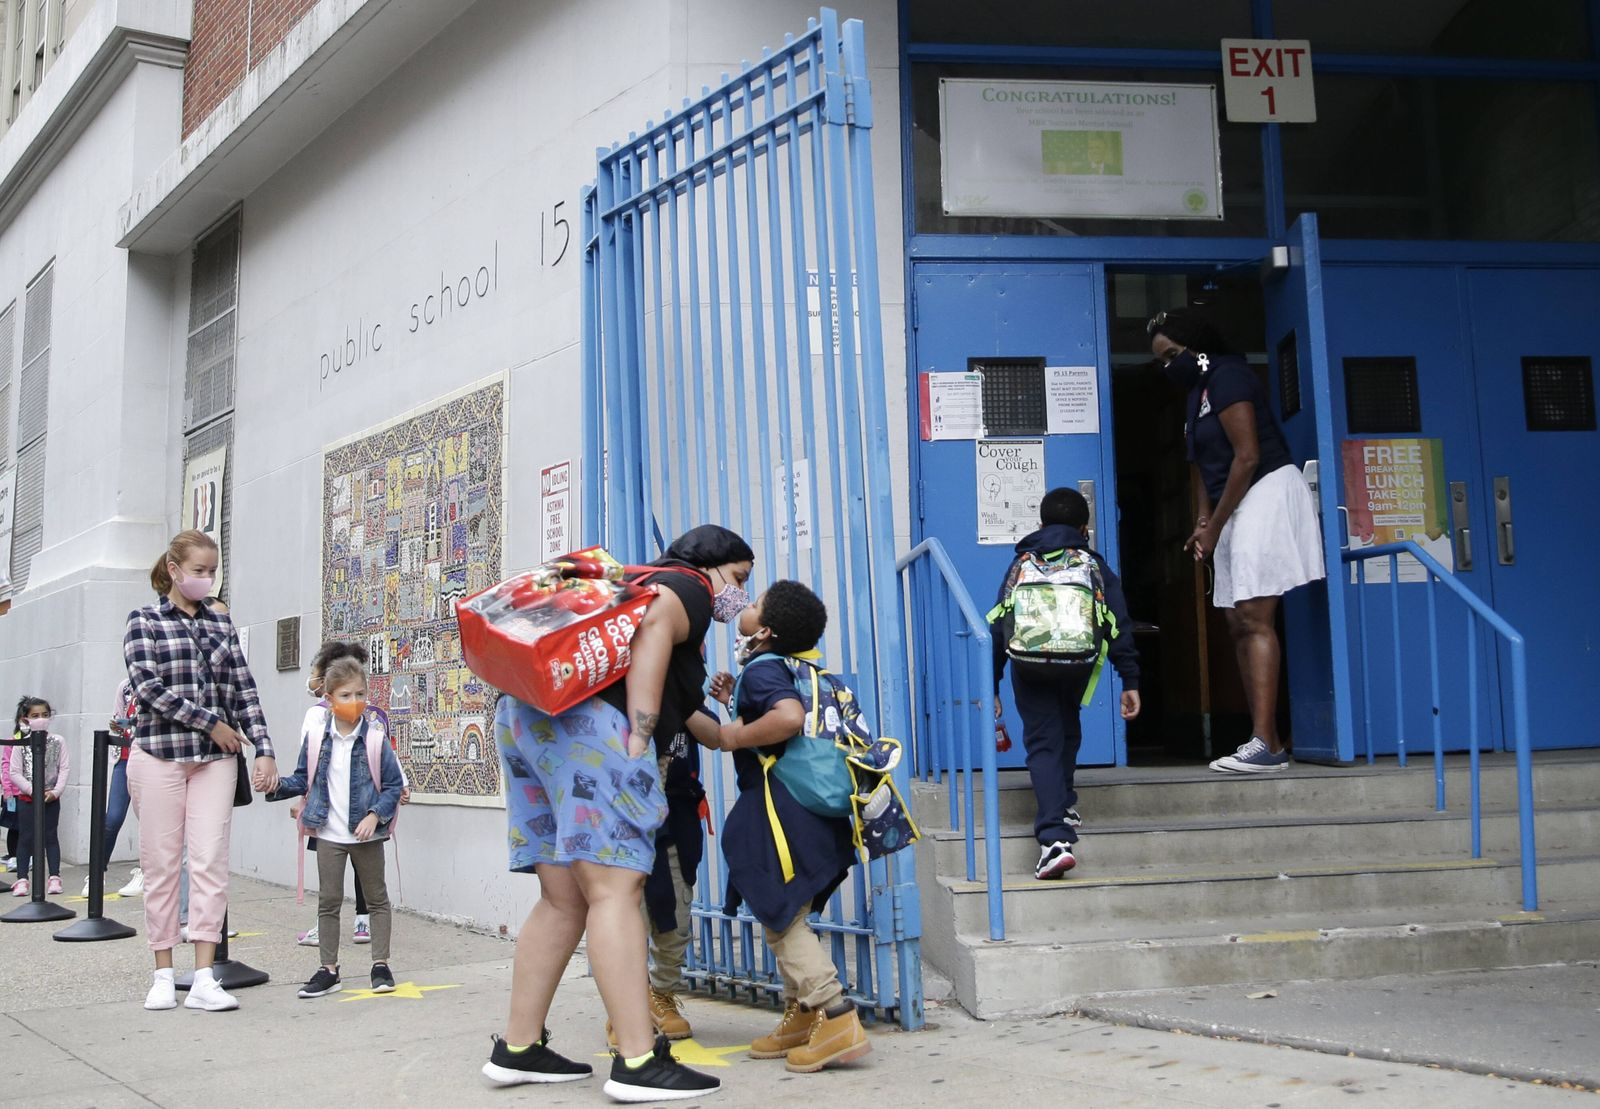 A woman kisses a child before the child enters Public School 15 in New York City on Tuesday, September 29, 2020. Due to